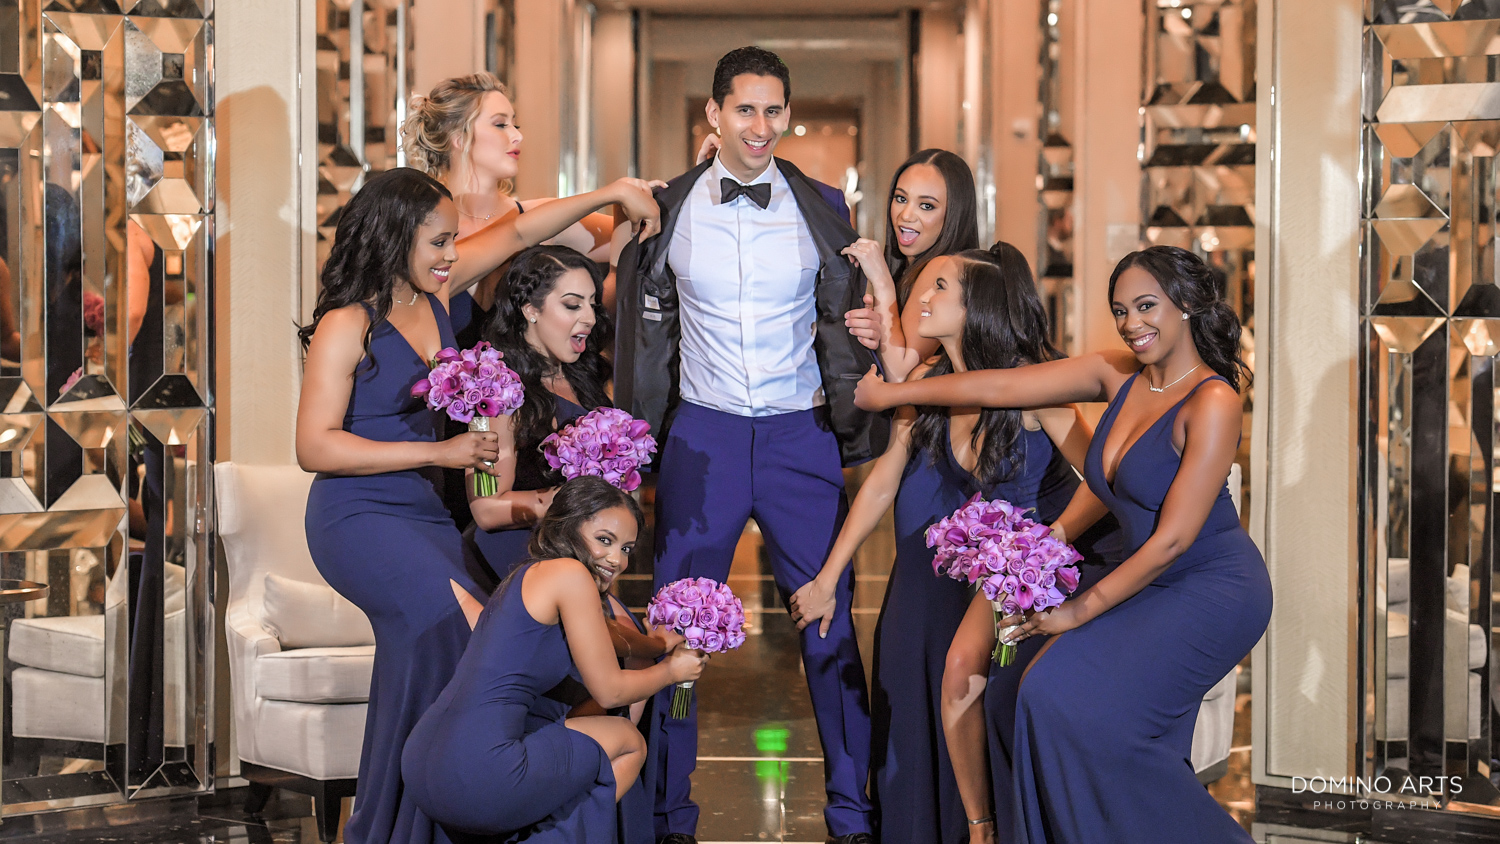 Fun wedding party pictures at The St. Regis Bal Harbour